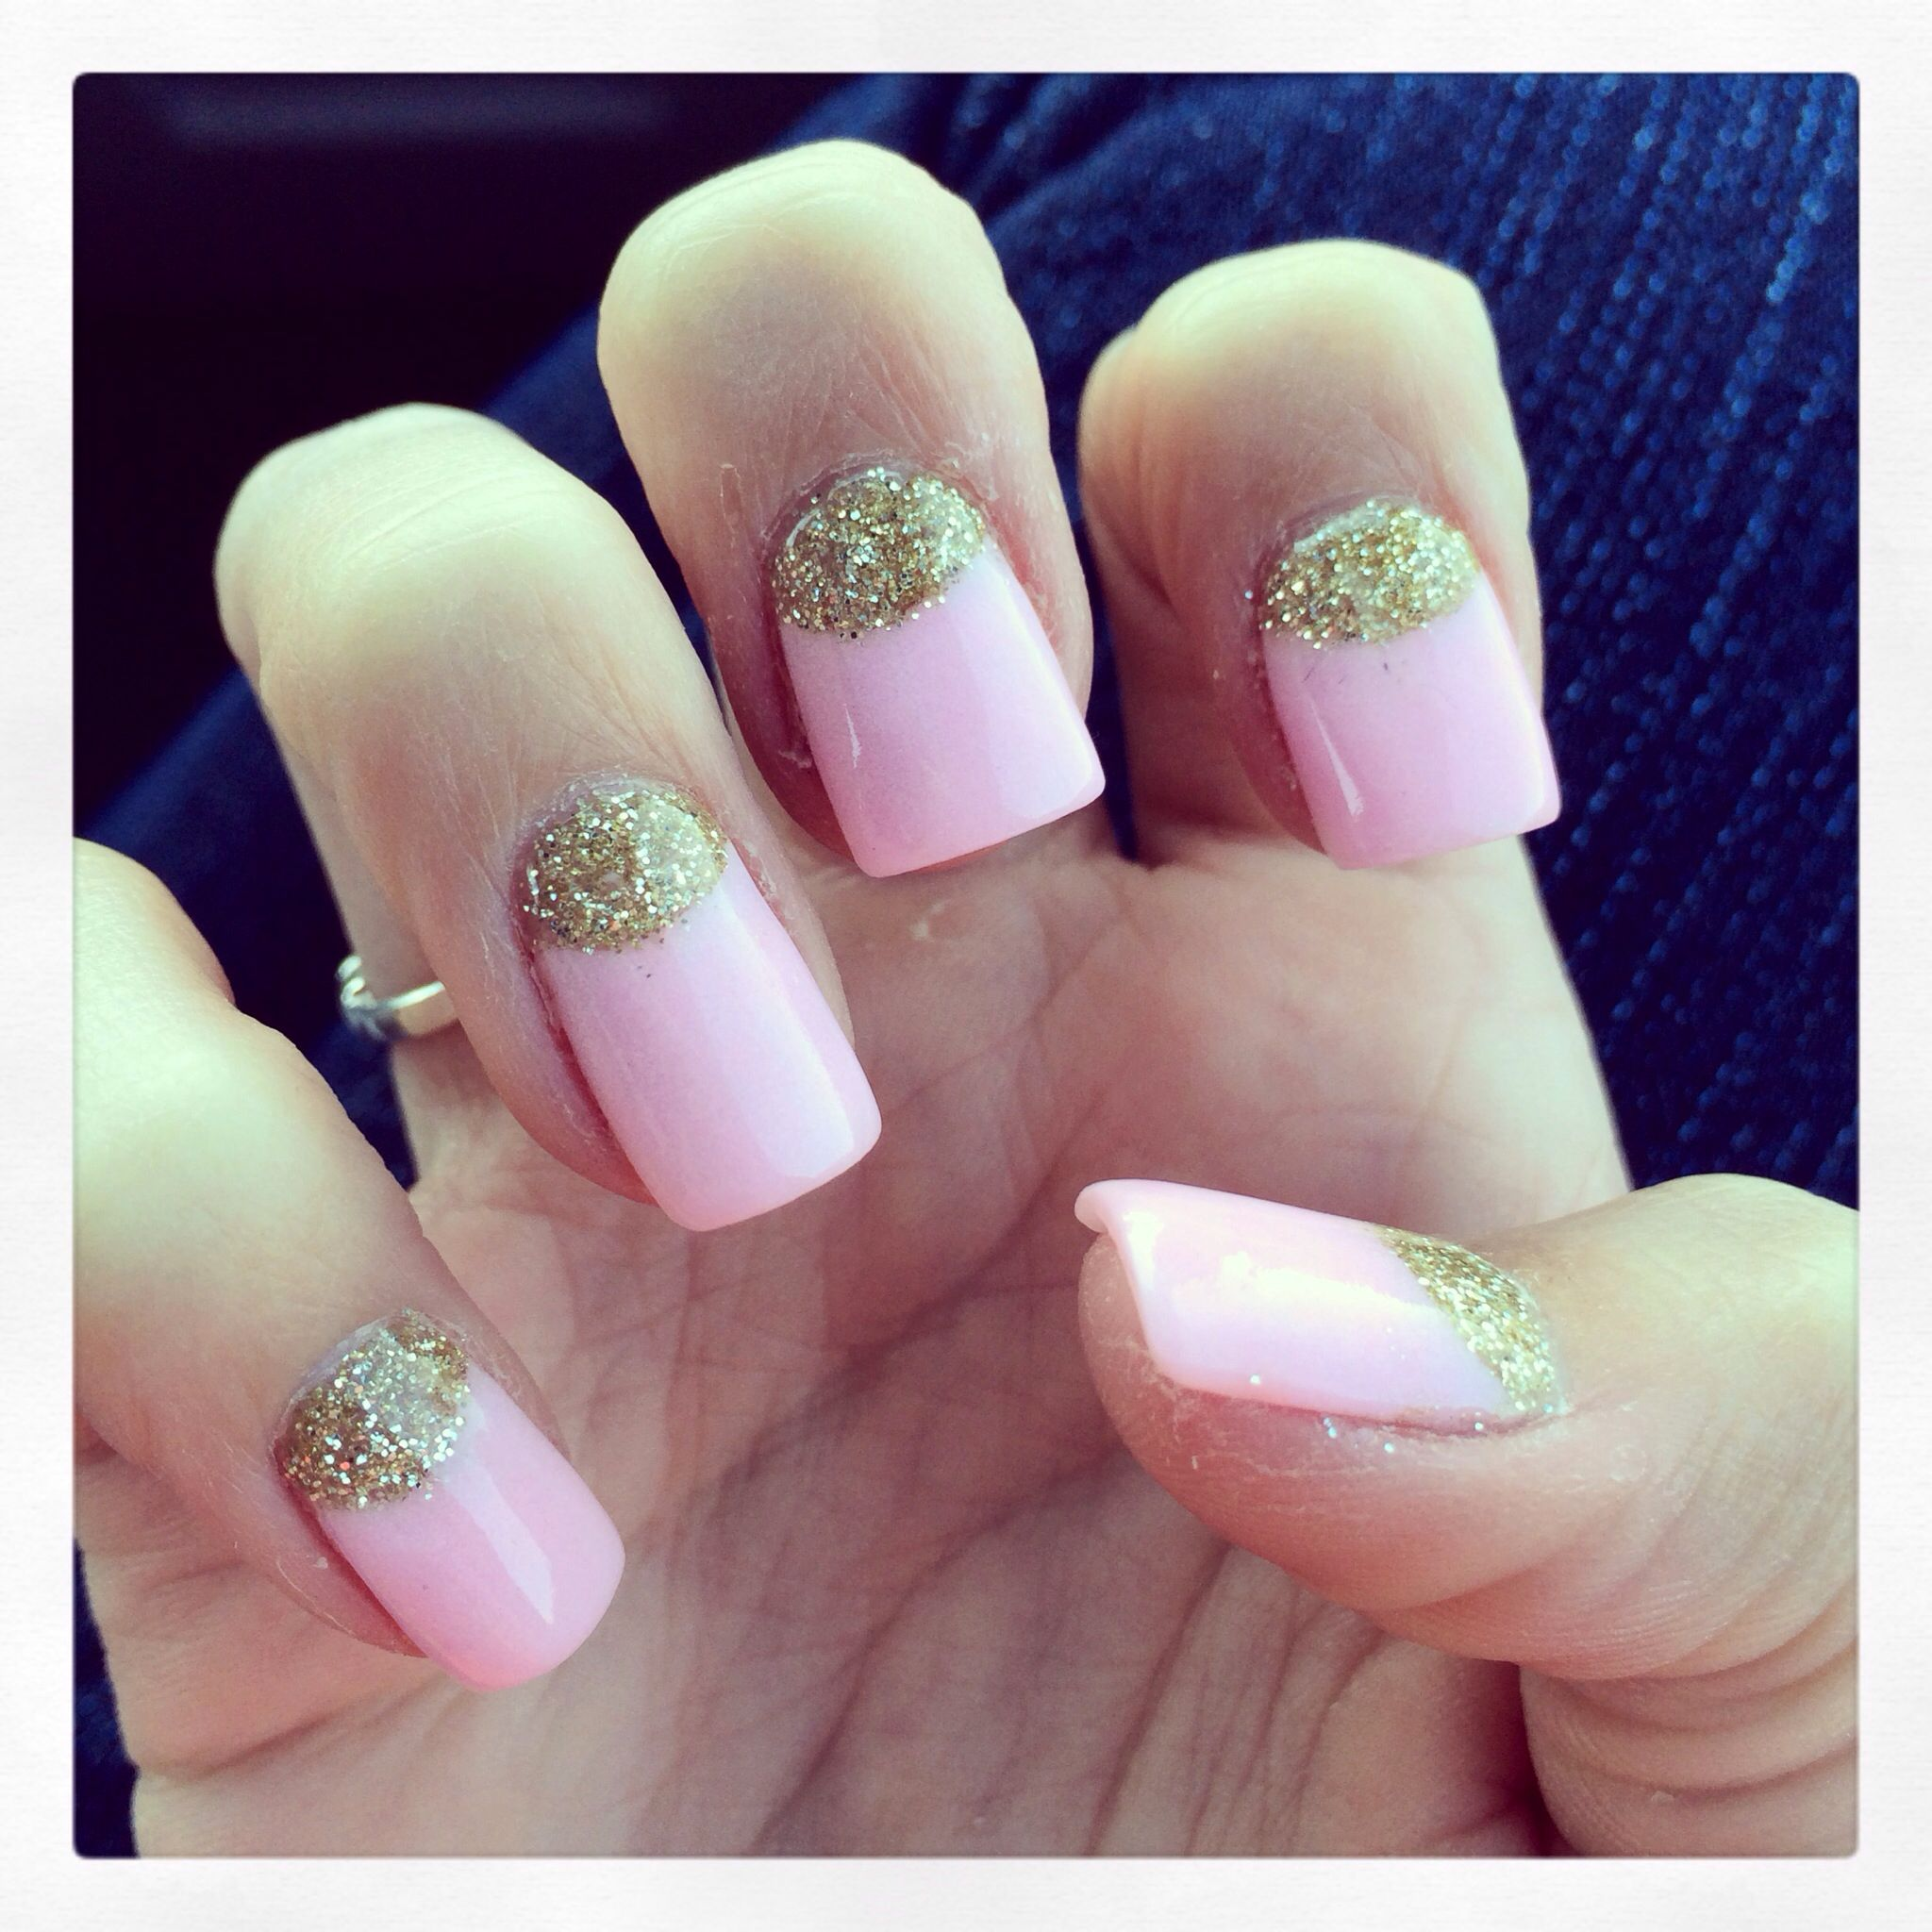 Nexgen reverse french nails with baby pinkglitter nails nexgen reverse french nails with baby pinkglitter prinsesfo Choice Image